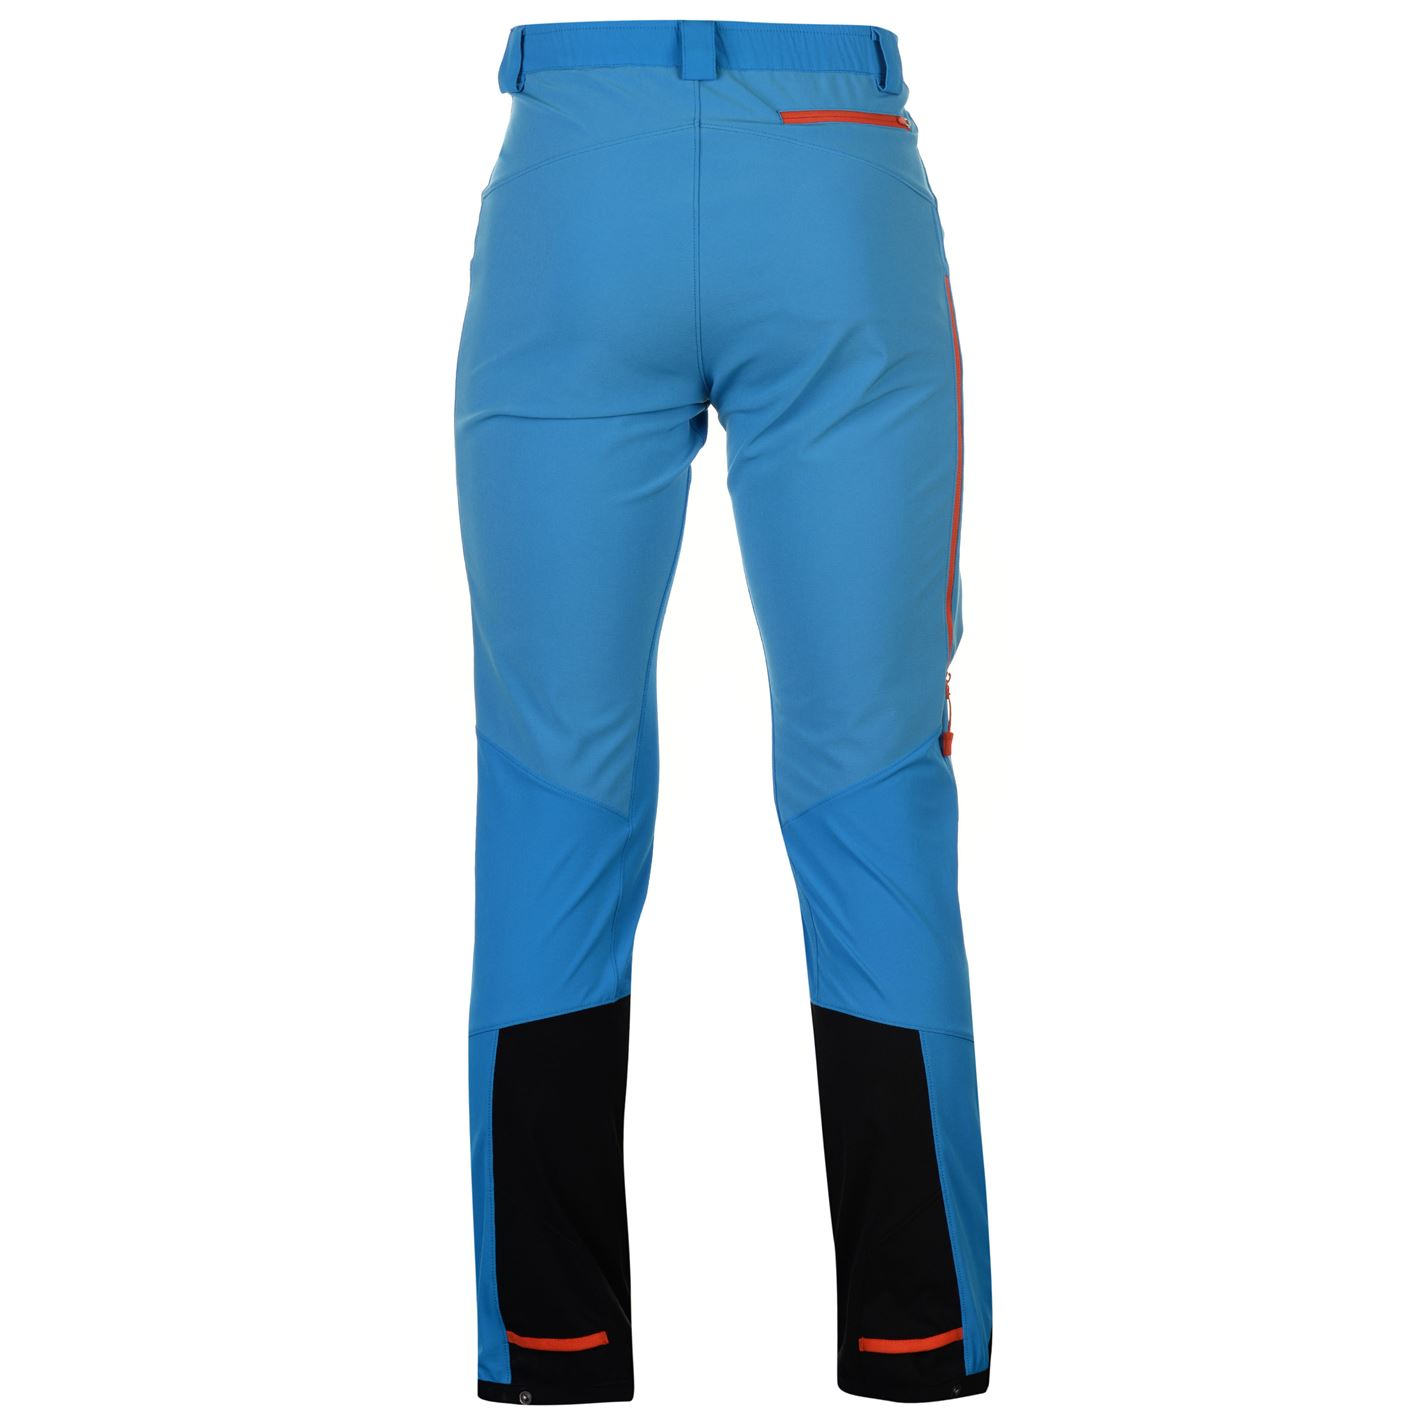 Millet Mens Touring Ski Pants Salopettes Trousers Bottoms  be2a99b49